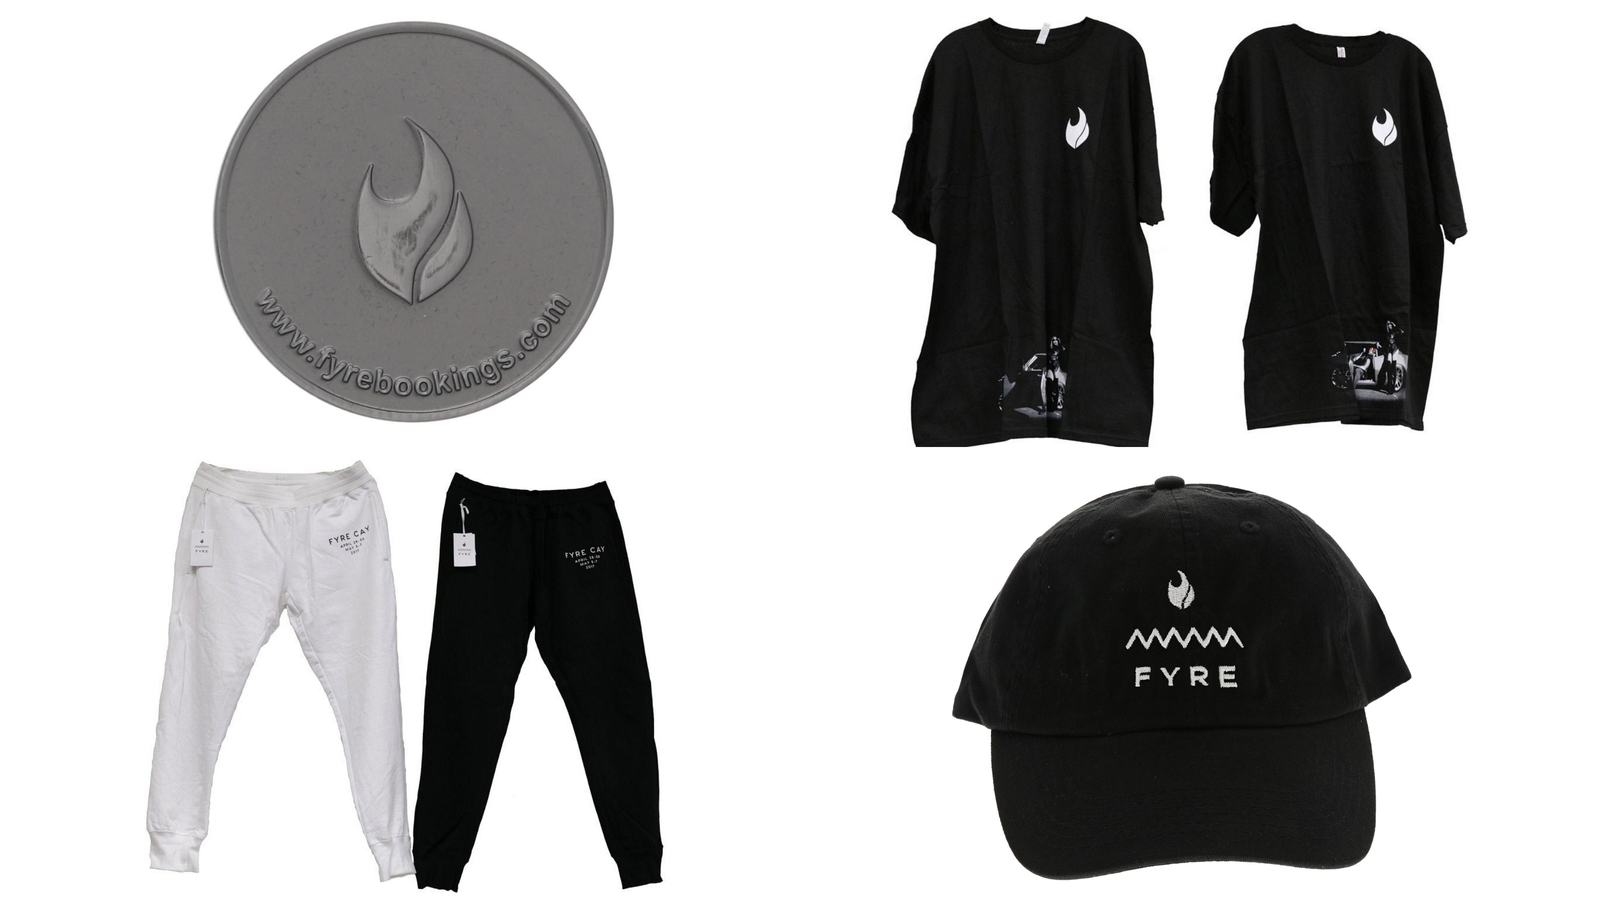 You can now buy merch from the infamous Fyre Fest fraud